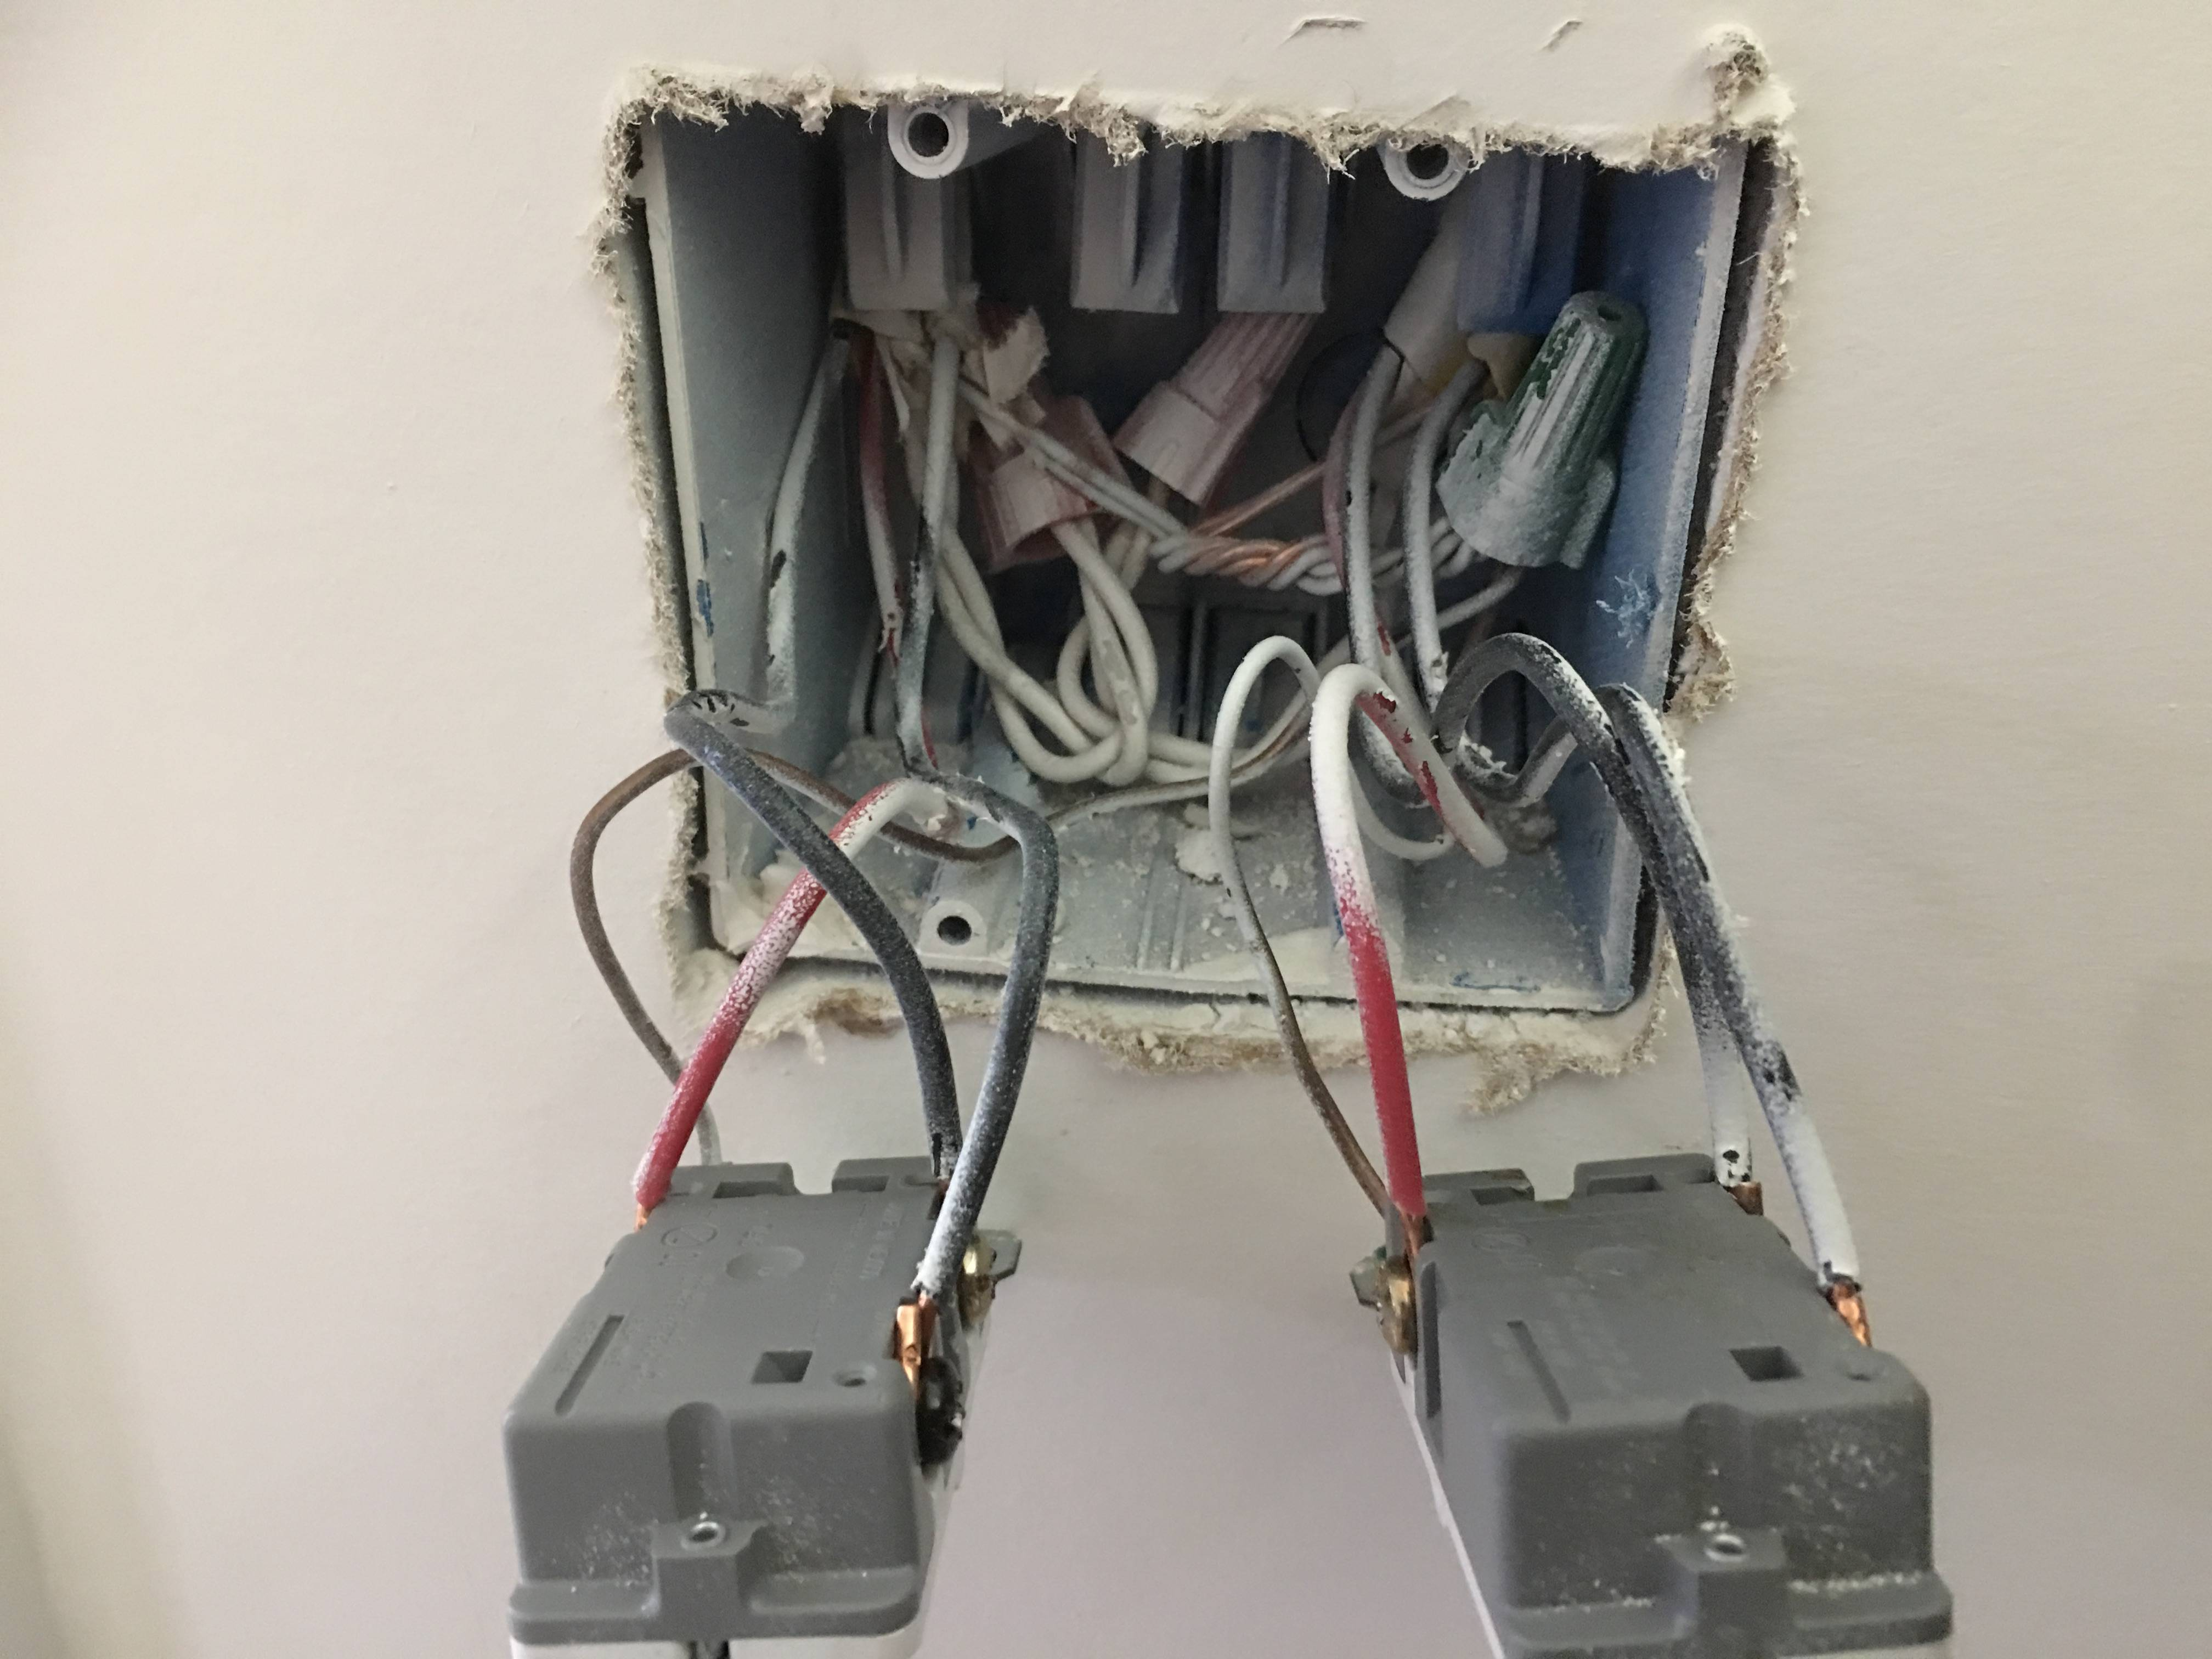 Is Basically A 3 Way Circuit With A 4 Way Switch Added Between The 2